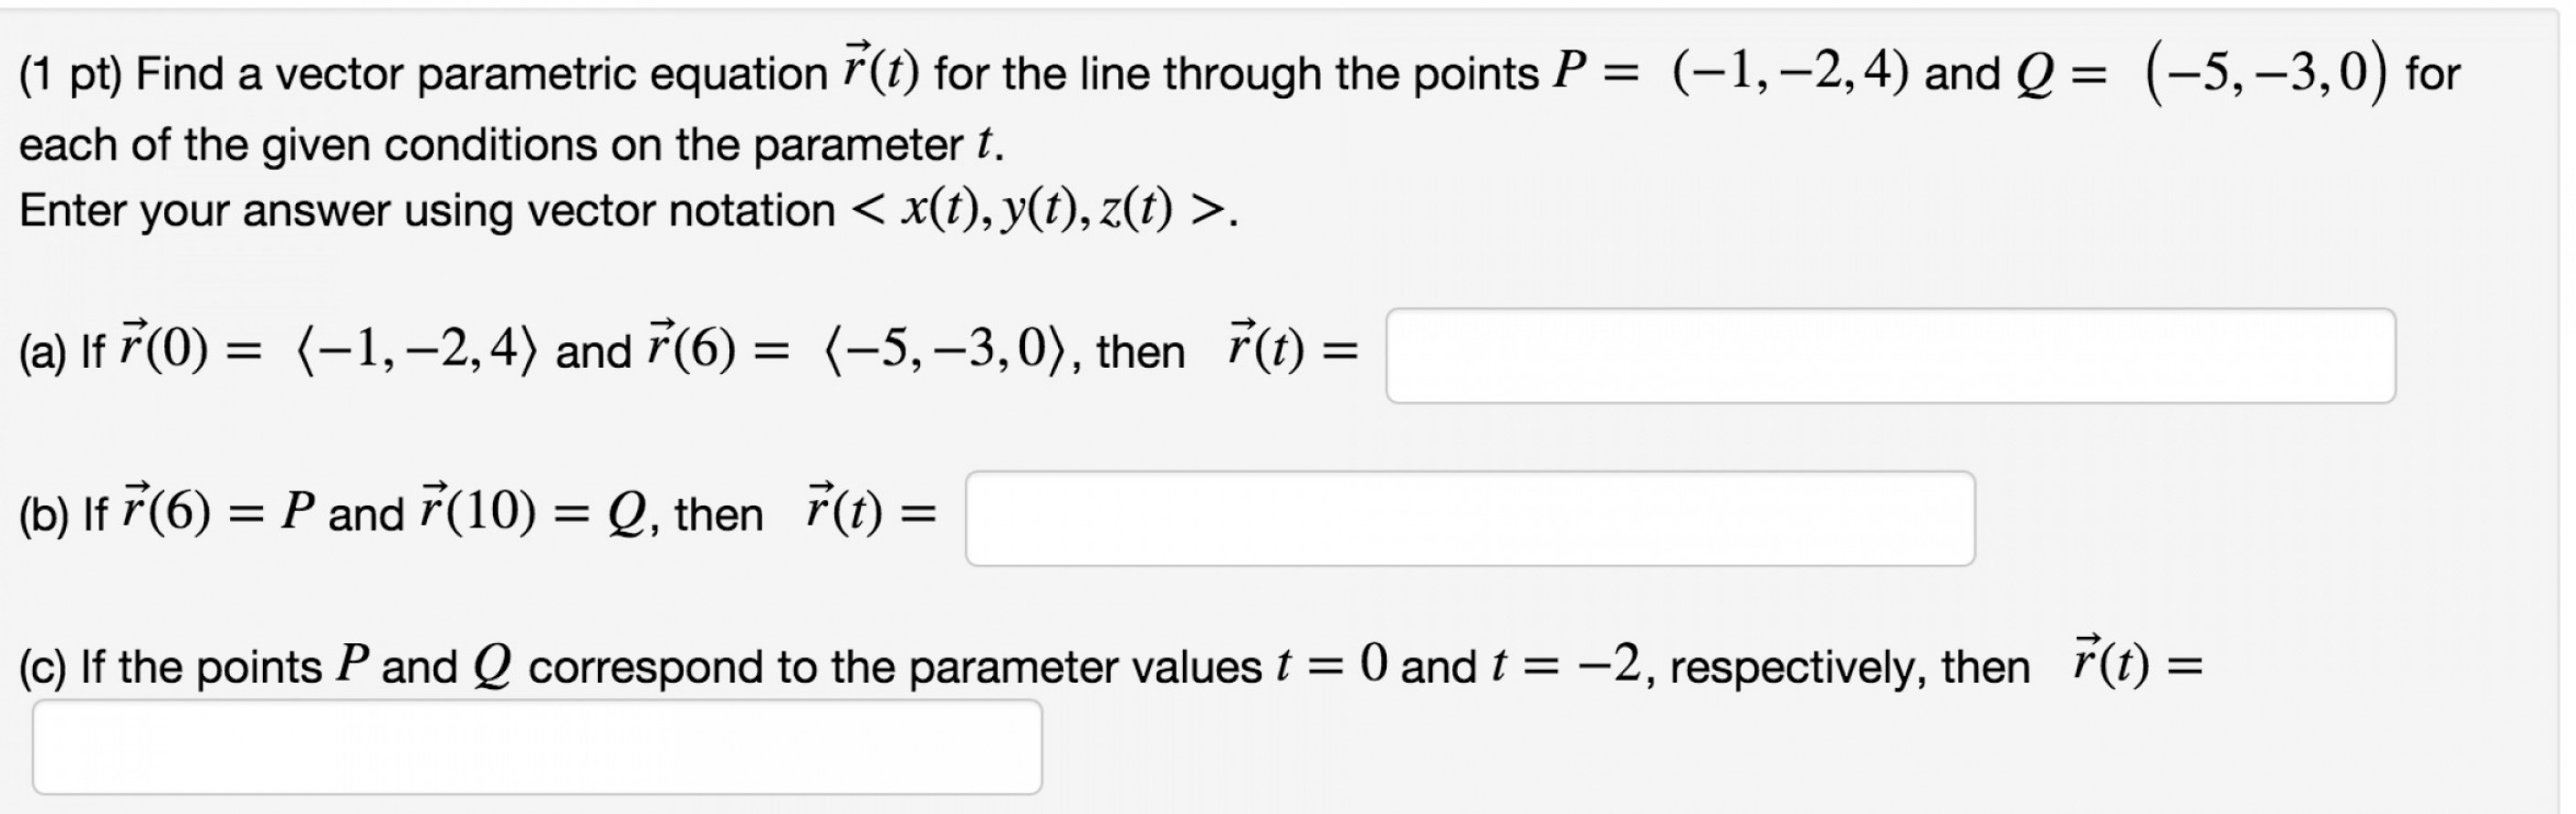 A Line Of Vector Equation R: Pt Find Vector Parametric Equation R Bar T Line Points P Q Foreach Given Con Q